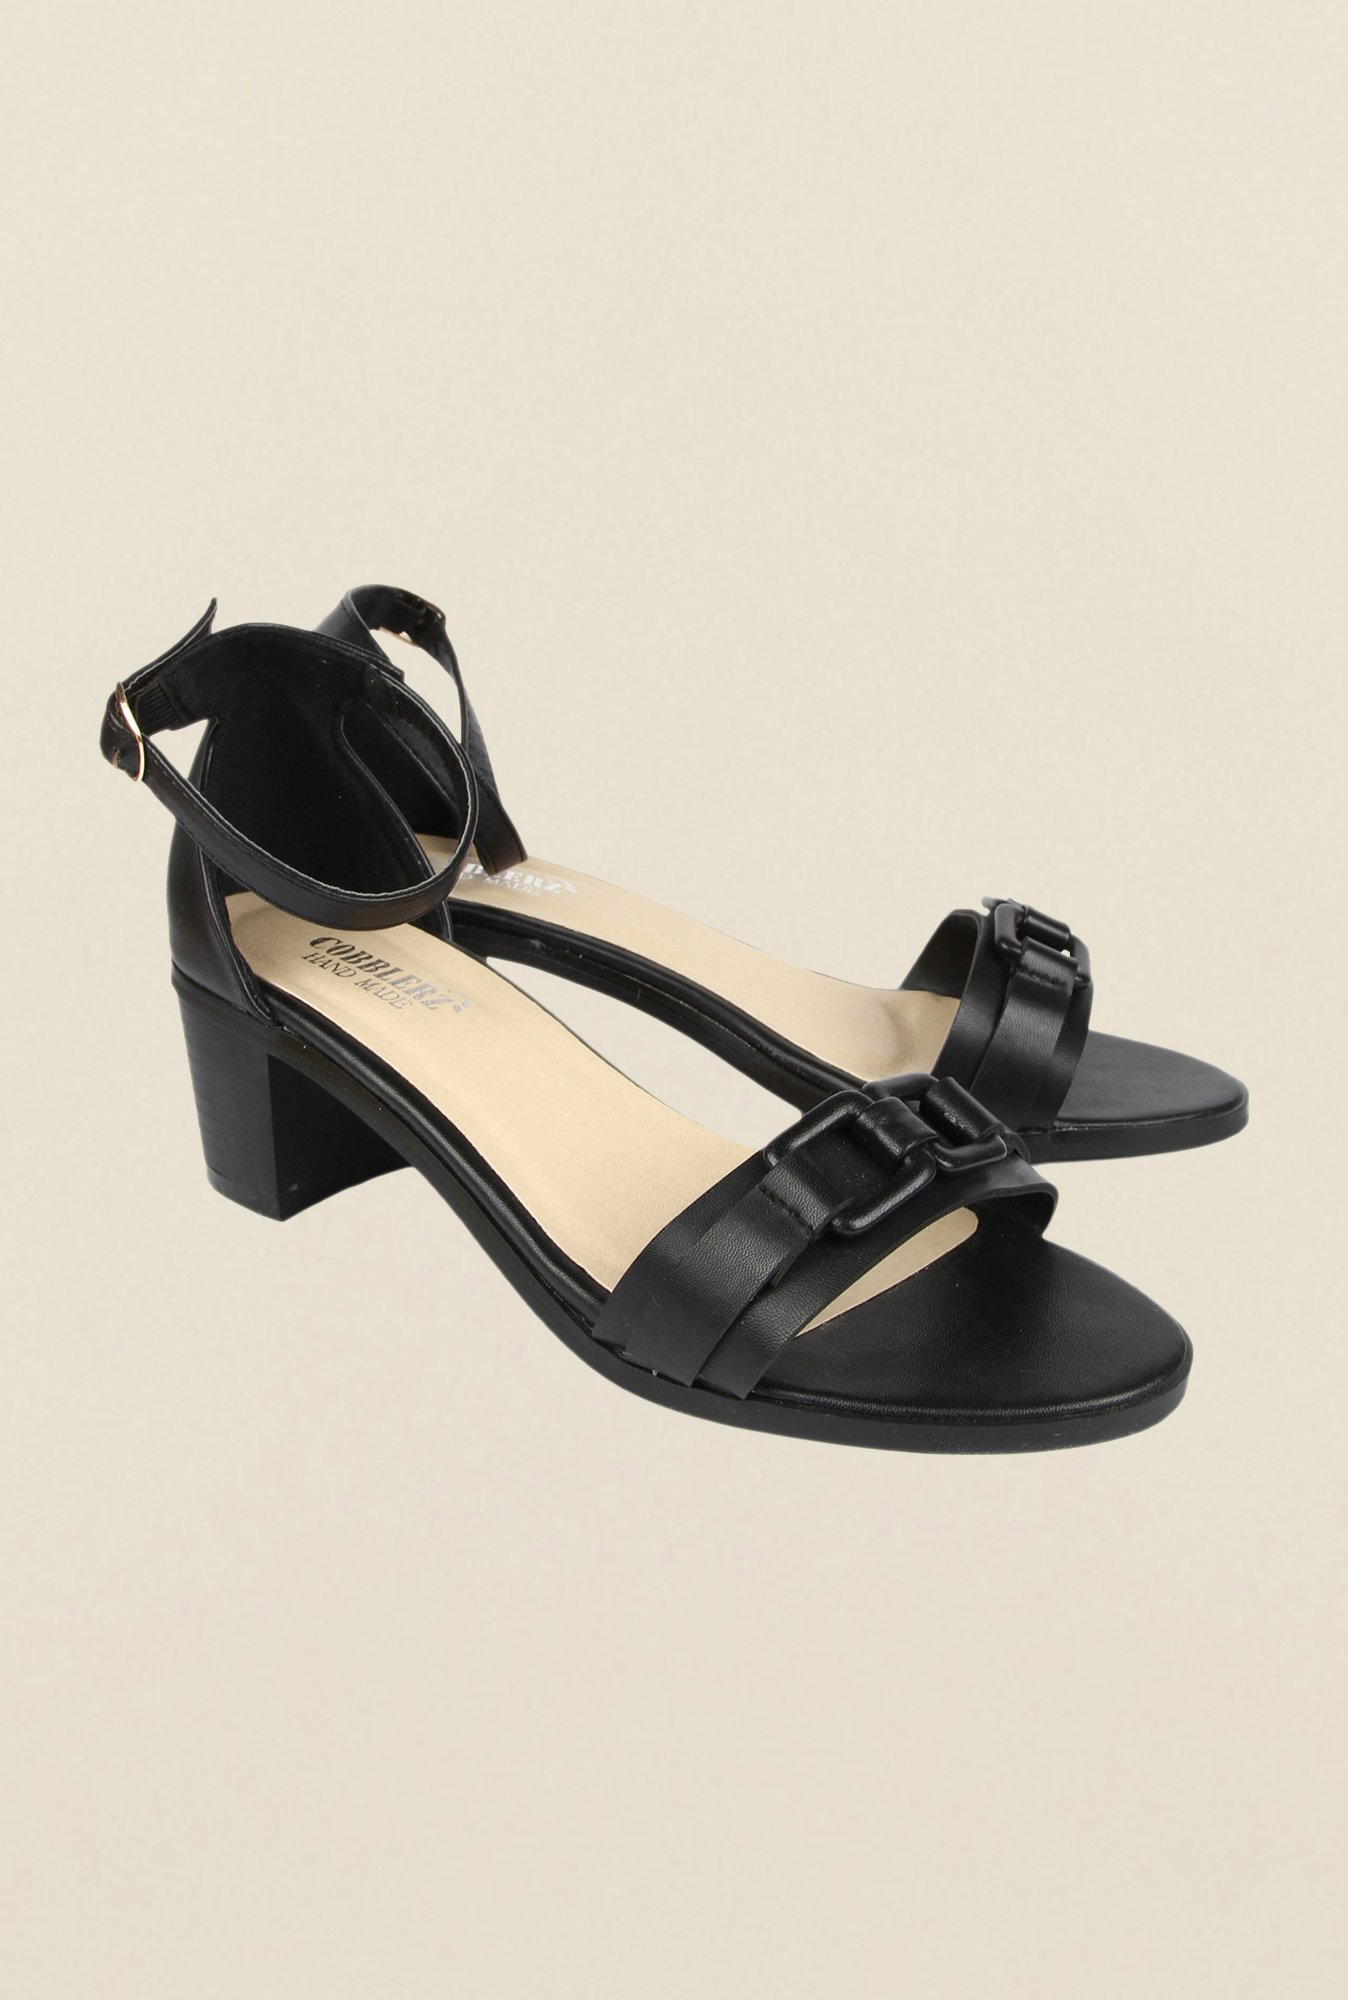 Cobblerz Black Block Sandals